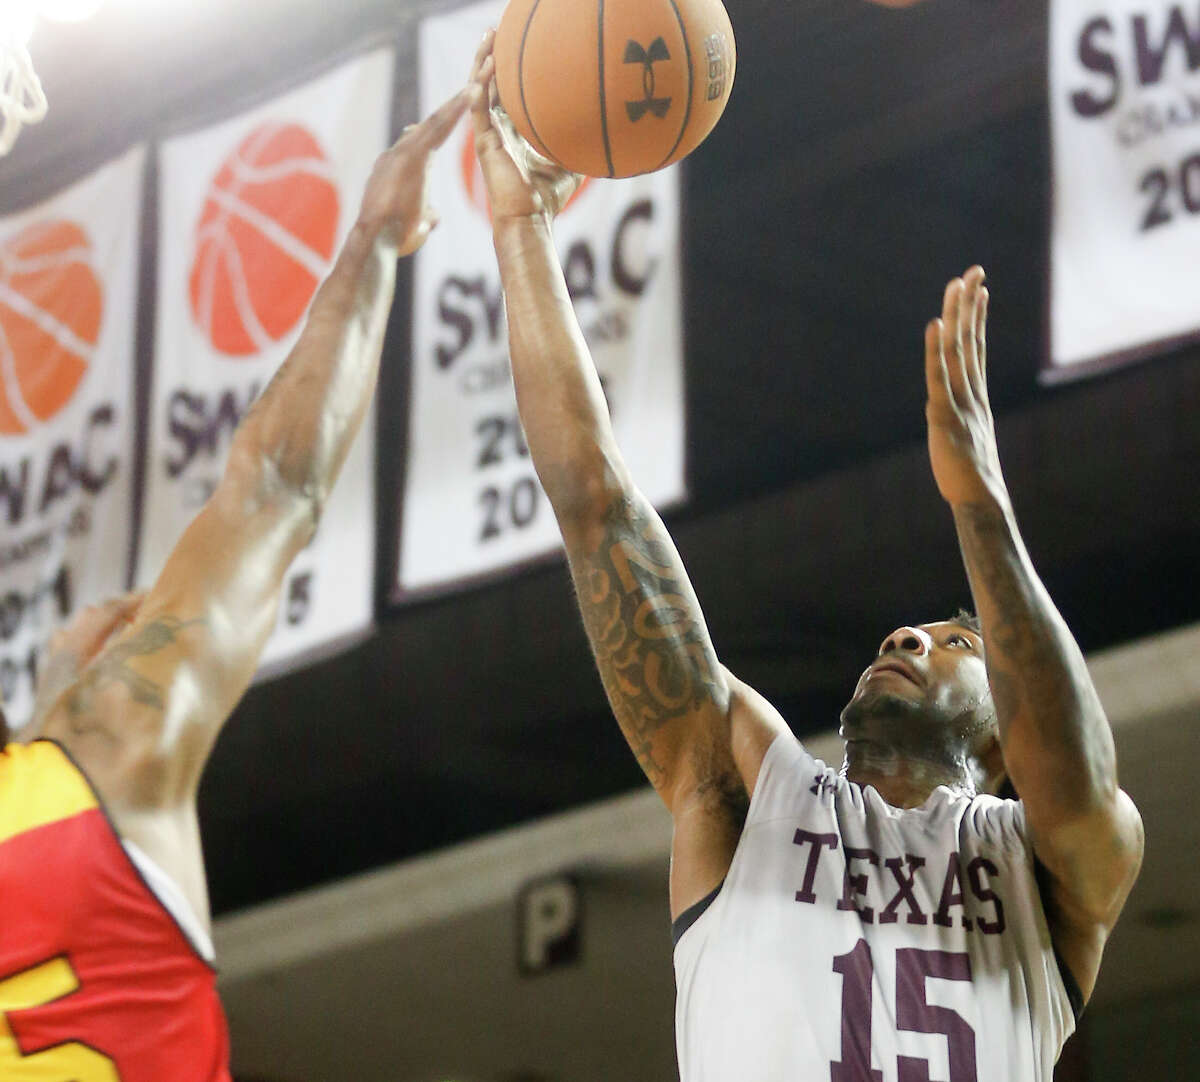 Texas Southern Tigers forward Justin Hopkins (15) drives to the basket against Grambling State Tigers forward DeVante Jackson (25) in the SWAC Basketball Tournament at TSU's Health and Physical Education Arena on Tuesday, March 10, 2020. TSU won the game 75-62.